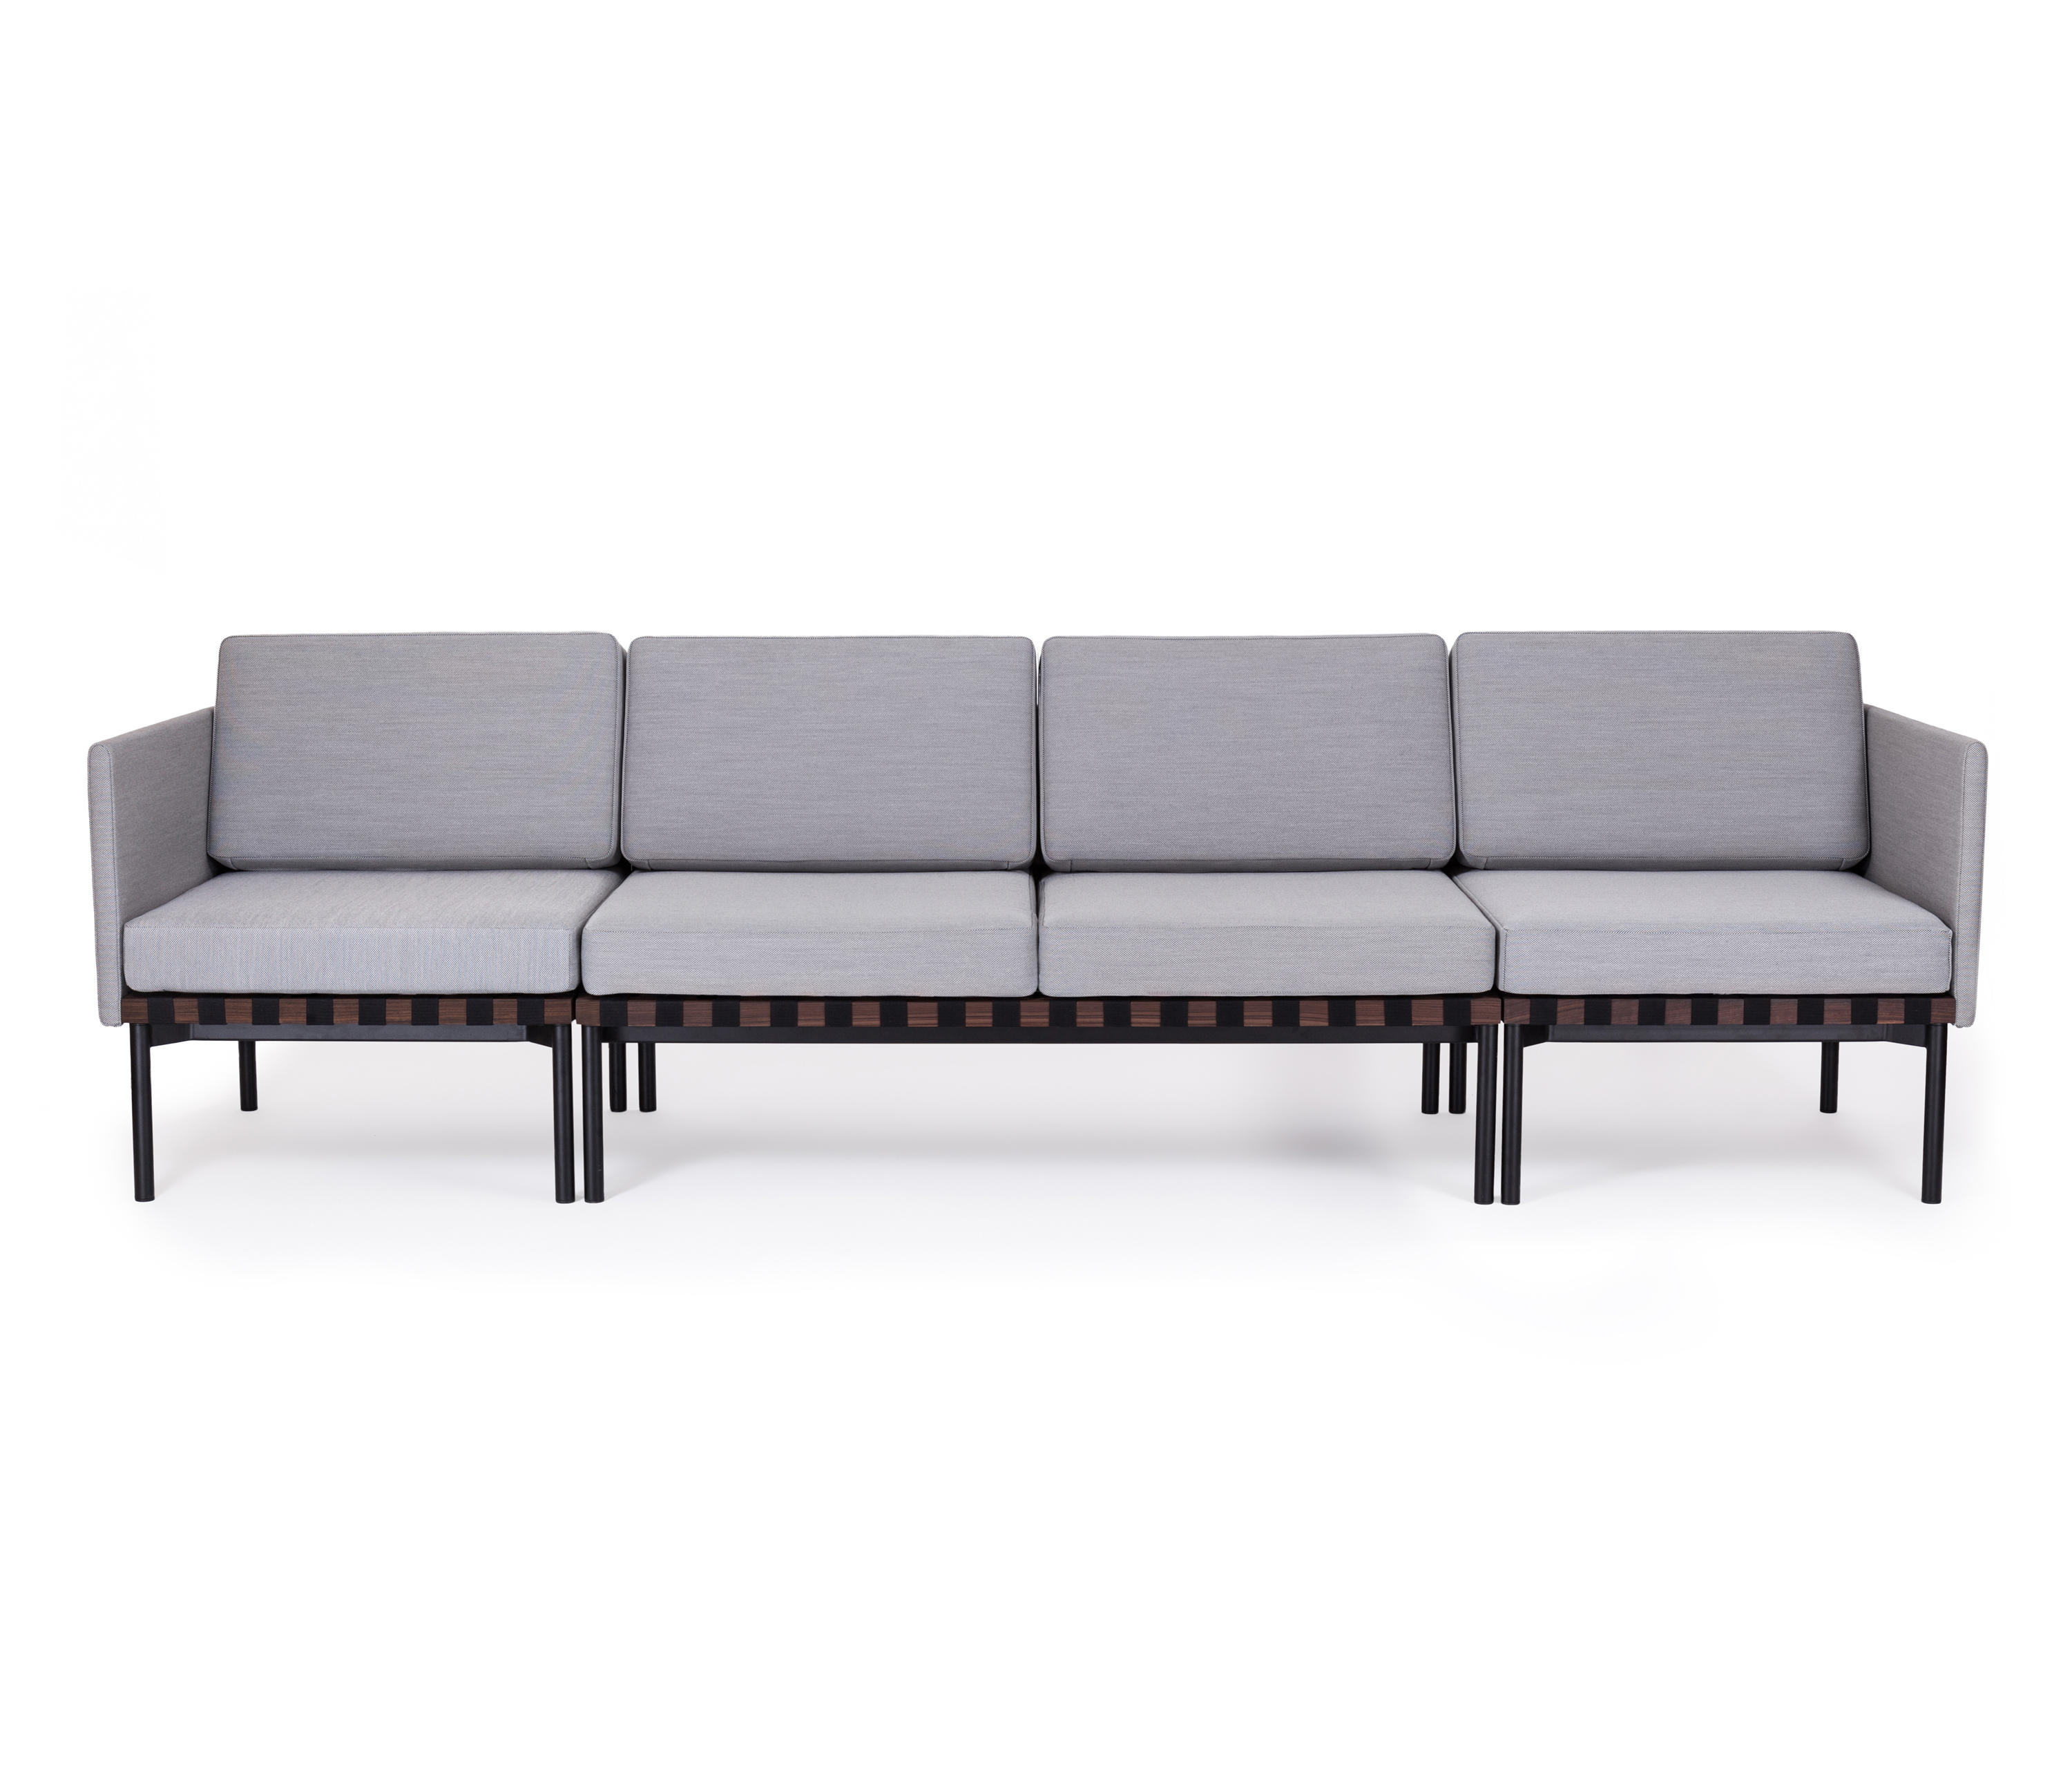 Grid sofa lounge sofas from petite friture architonic for Sofa modular gris